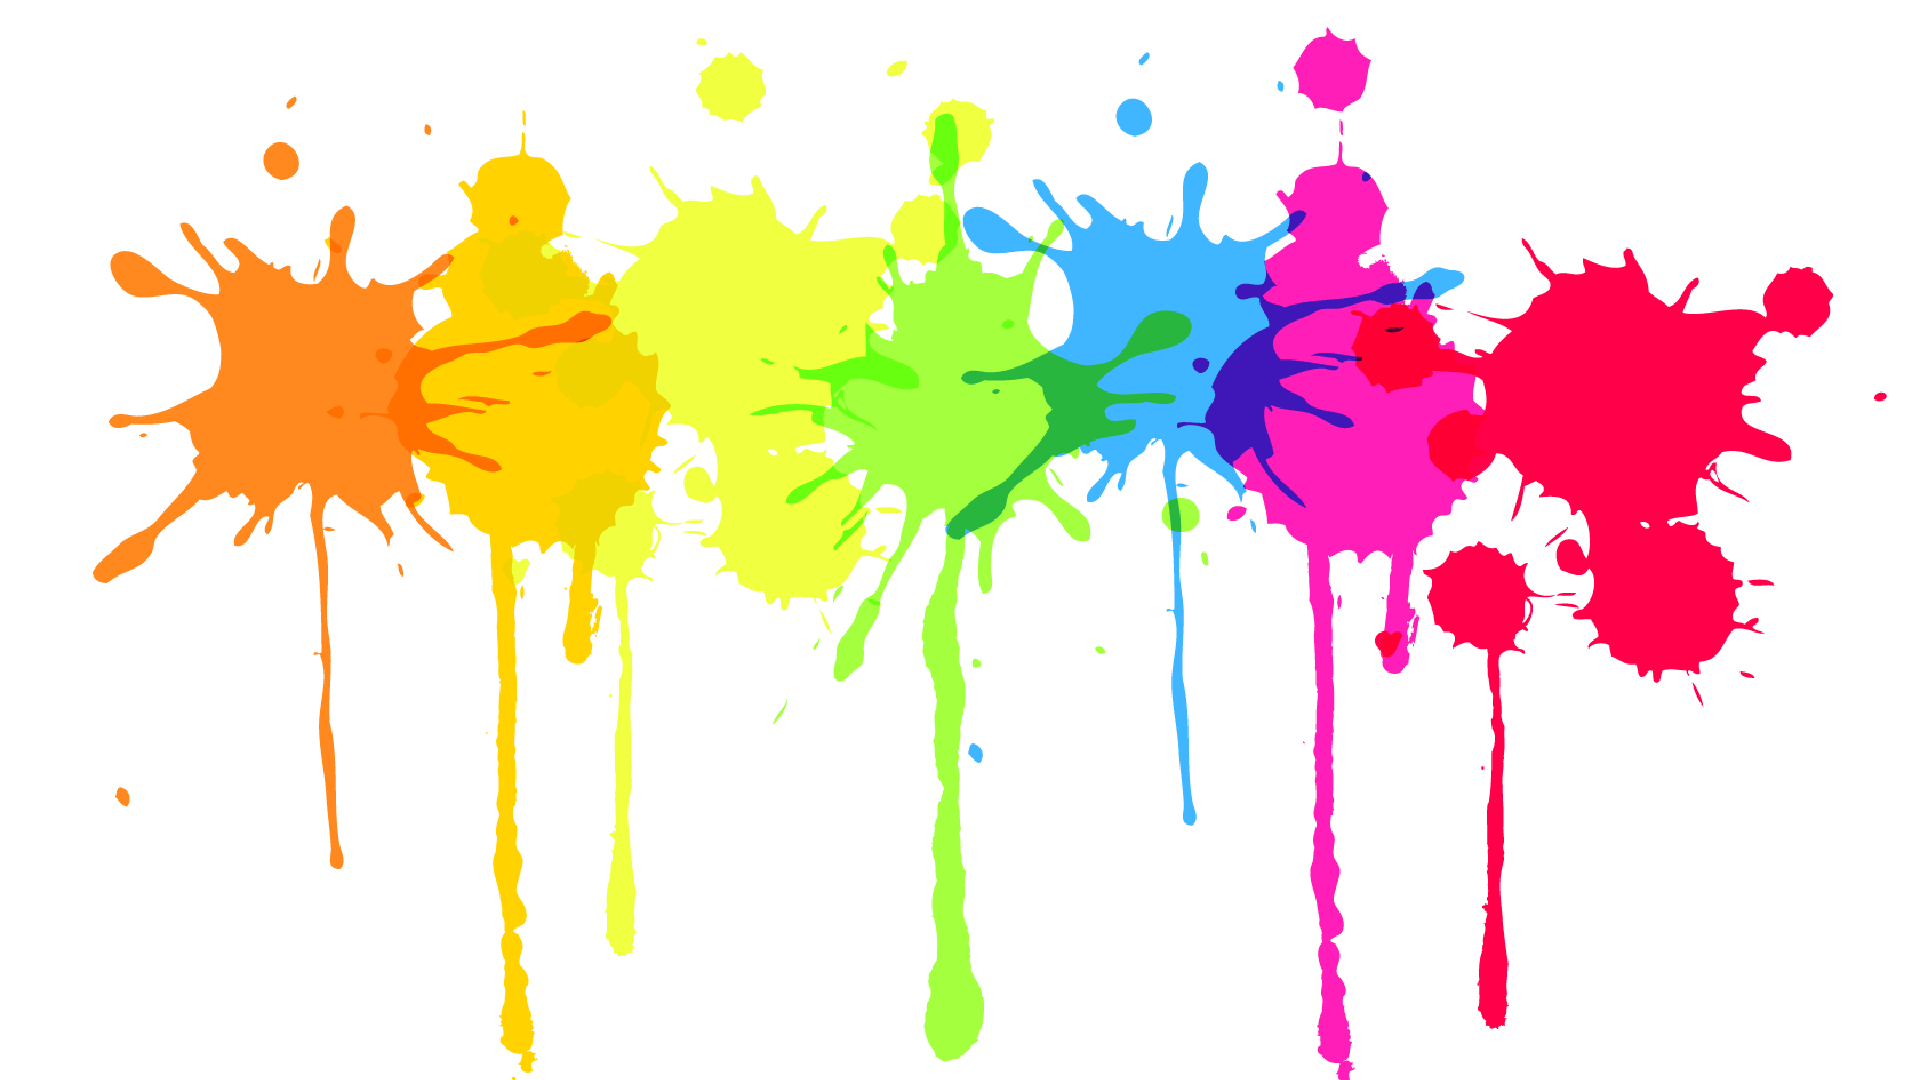 Paint Splatter Clipart Panda Free Clipart Images in 2019.